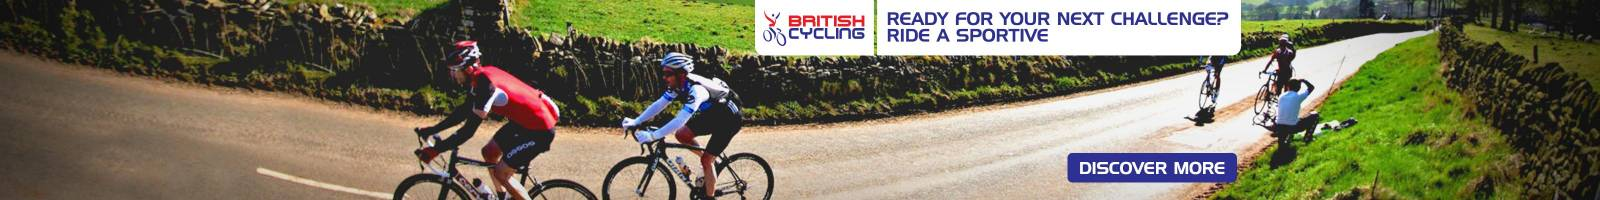 Try a Sportive challenge in 2016